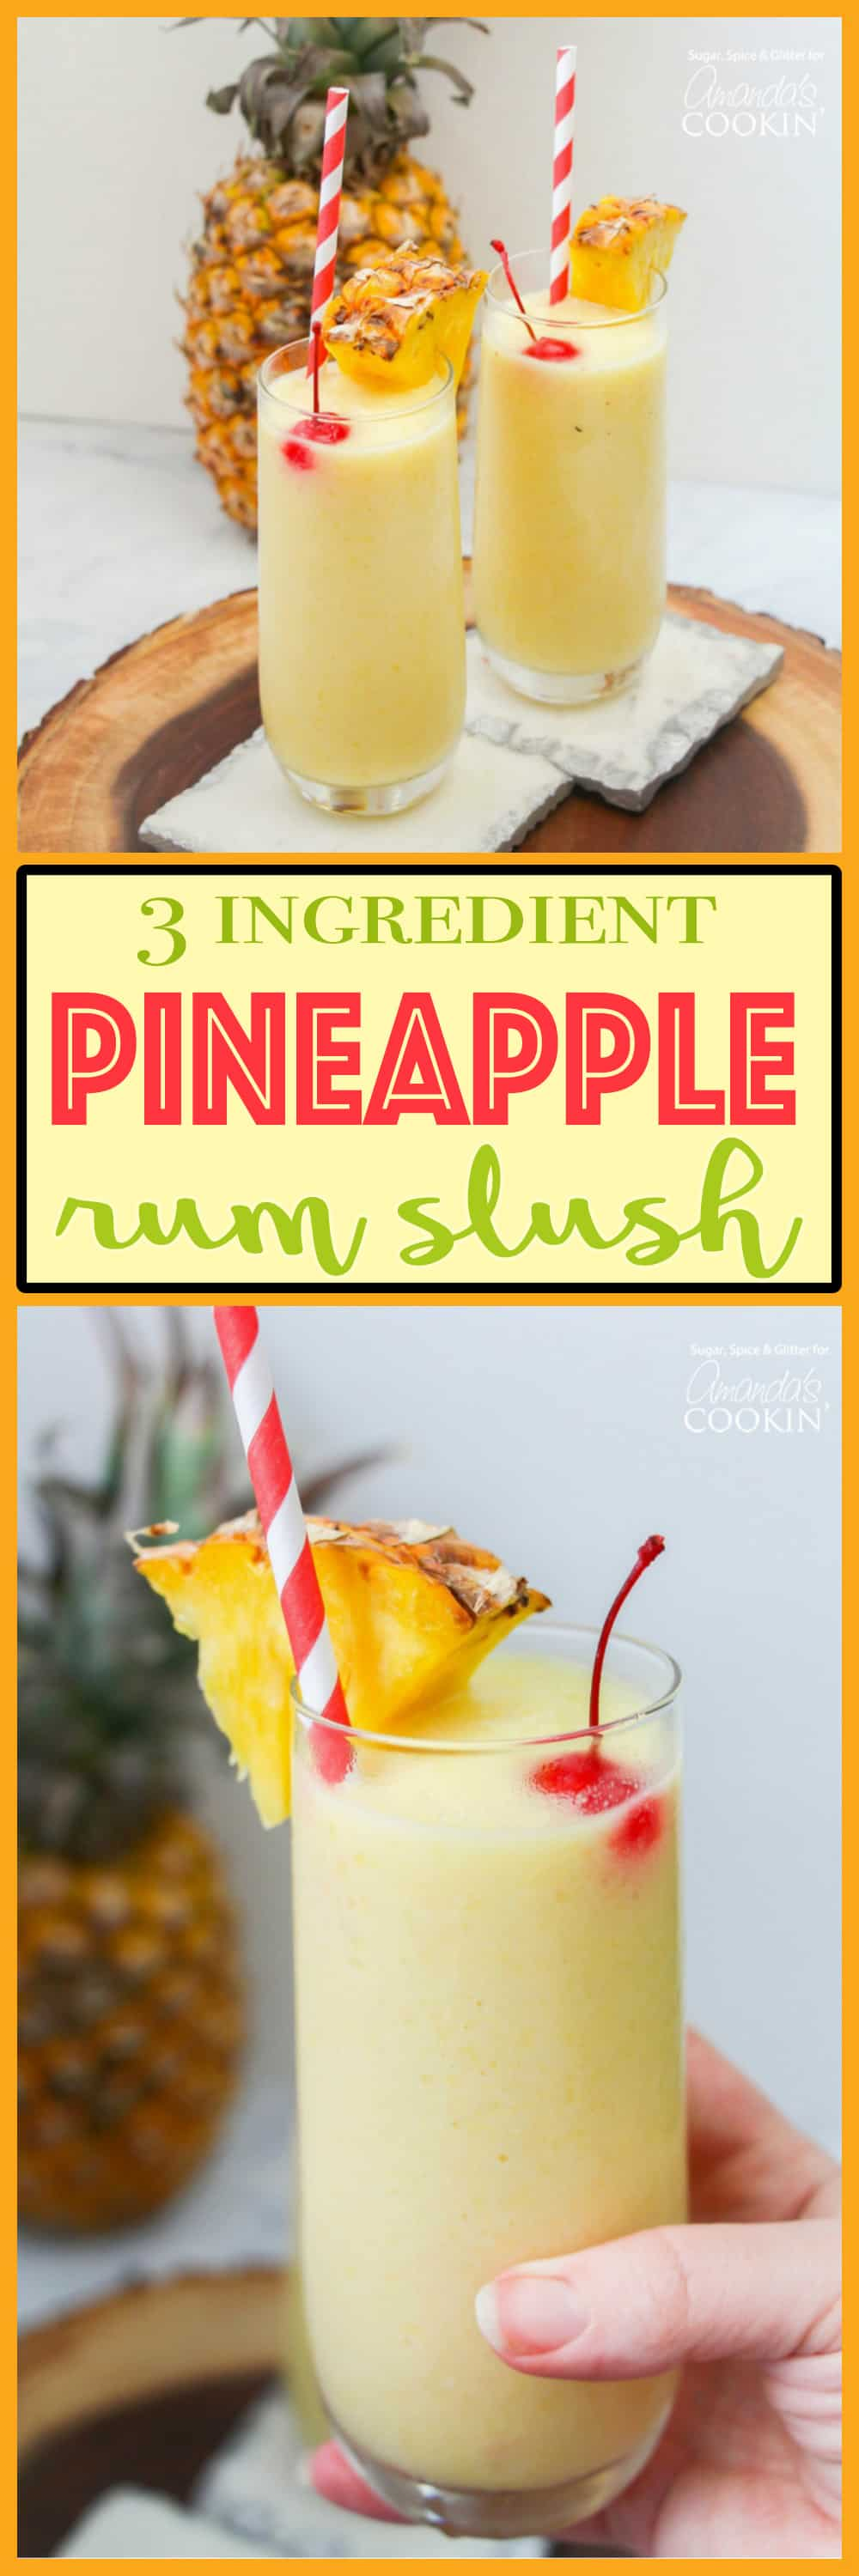 This pineapple rum slush is the perfect quick cocktail for a crowd, or for a nice refreshing drink after winding down from a hot summer day.